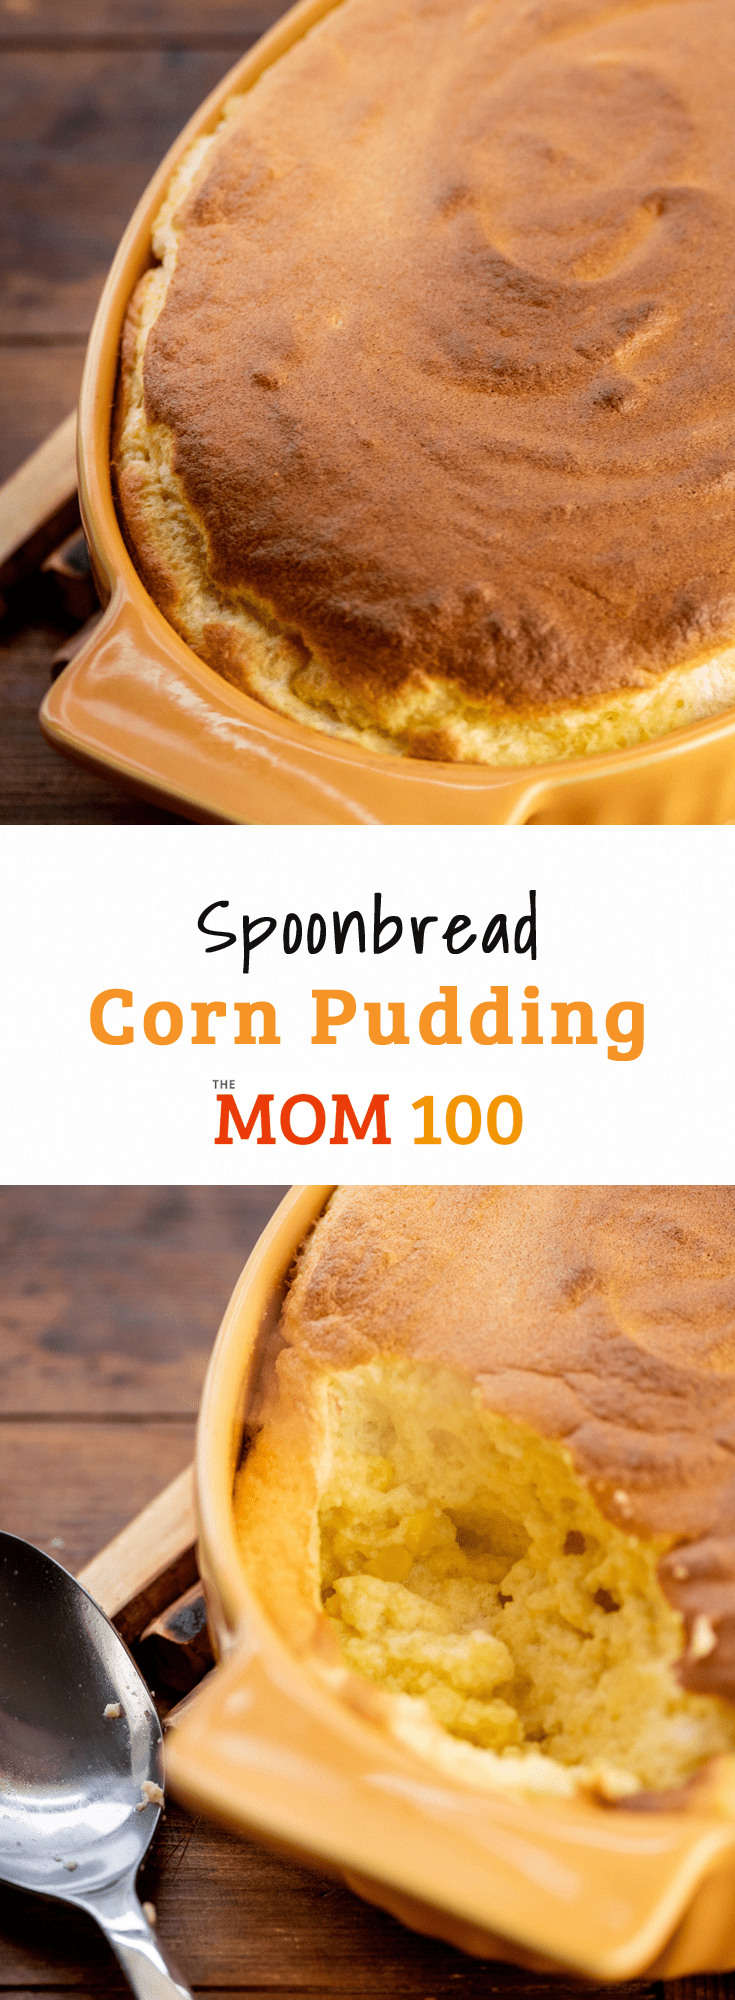 If corn pudding and spoonbread had a baby. Spoonbread Corn Pudding is a delicious side dish that will have everyone asking for seconds.